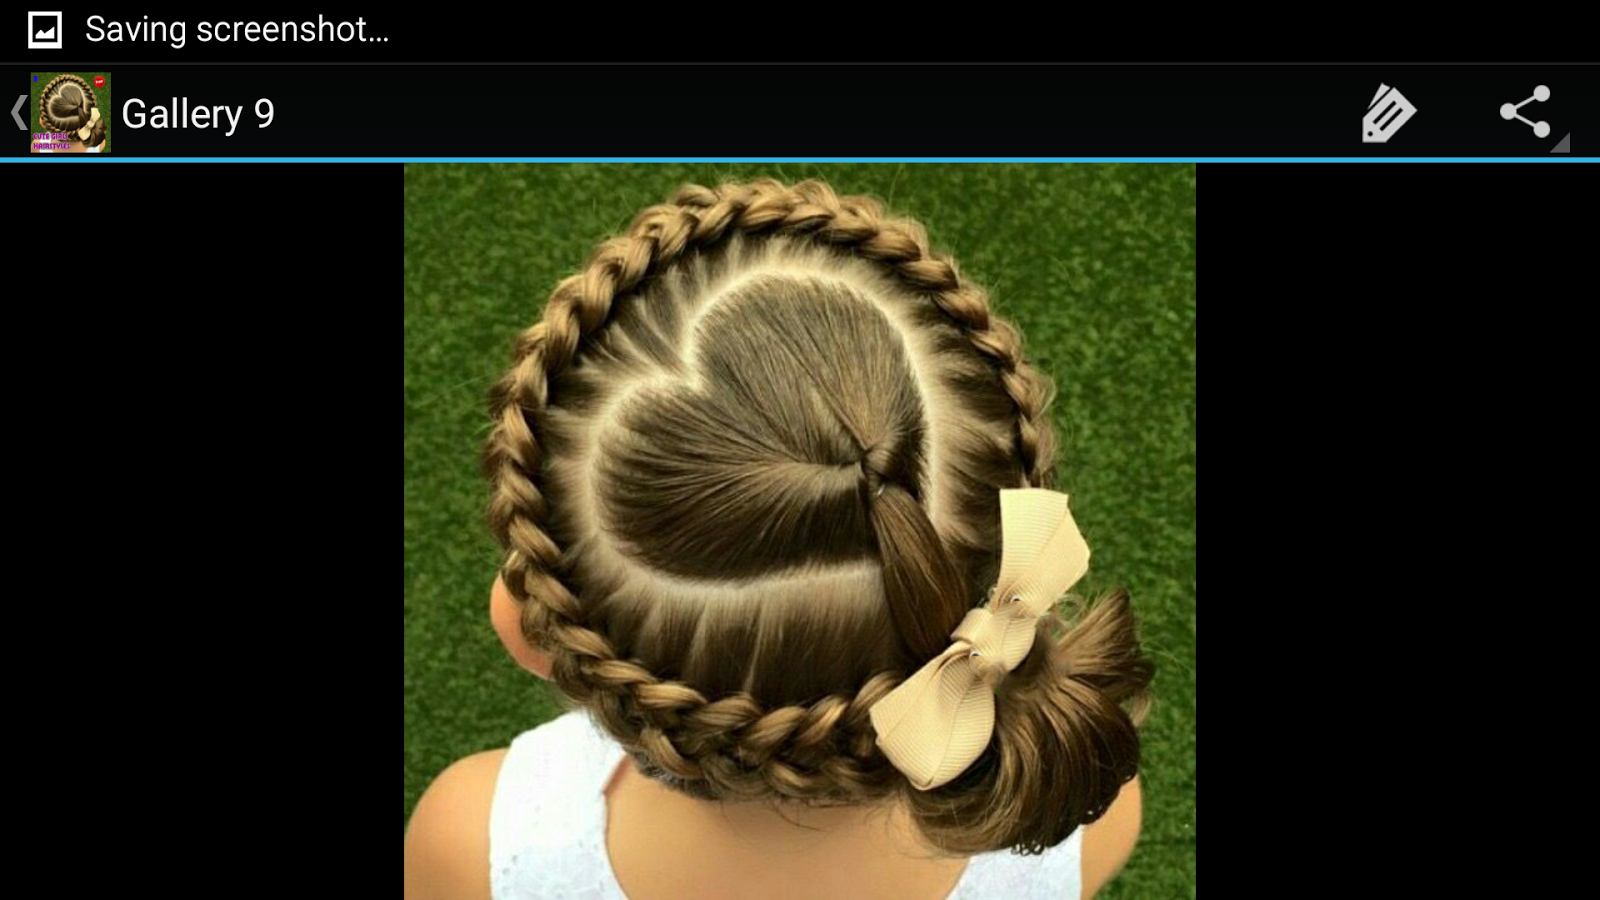 Cute Girl Hairstyles - Android Apps on Google Play